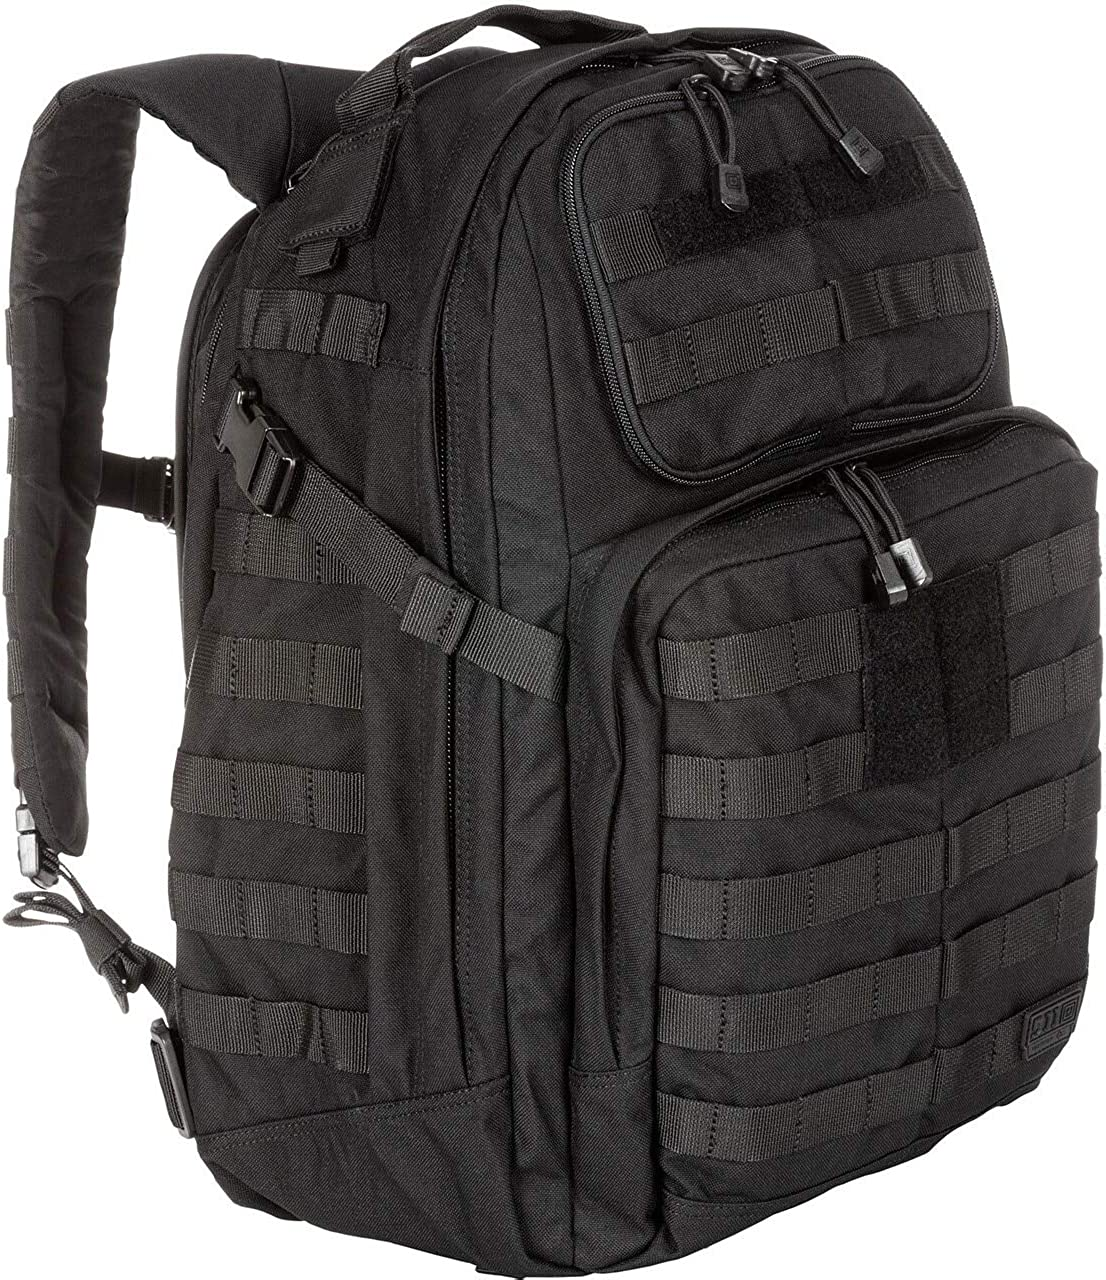 5.11 Tactical RUSH24 Military Backpack